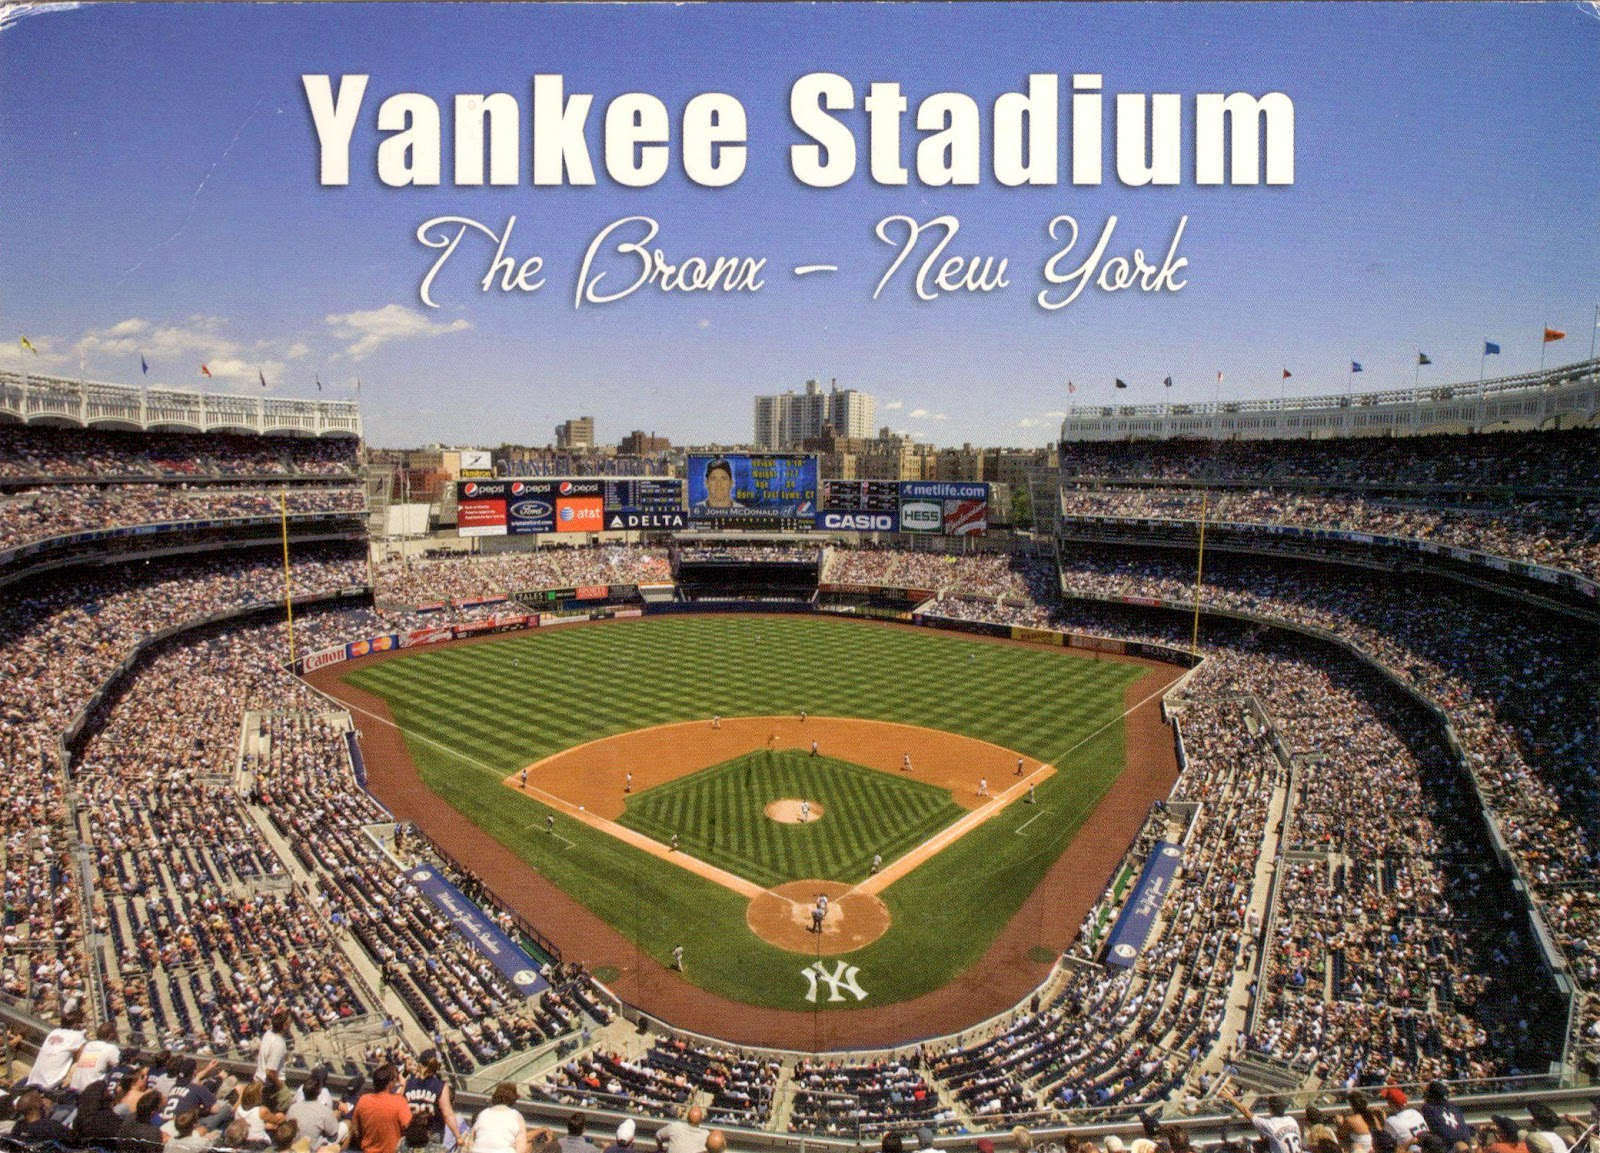 yankee stadium We went to see the nyy the stadium was clean and we had great seats my kids loved that we were able to order food on their app from our seats & have it delivered.